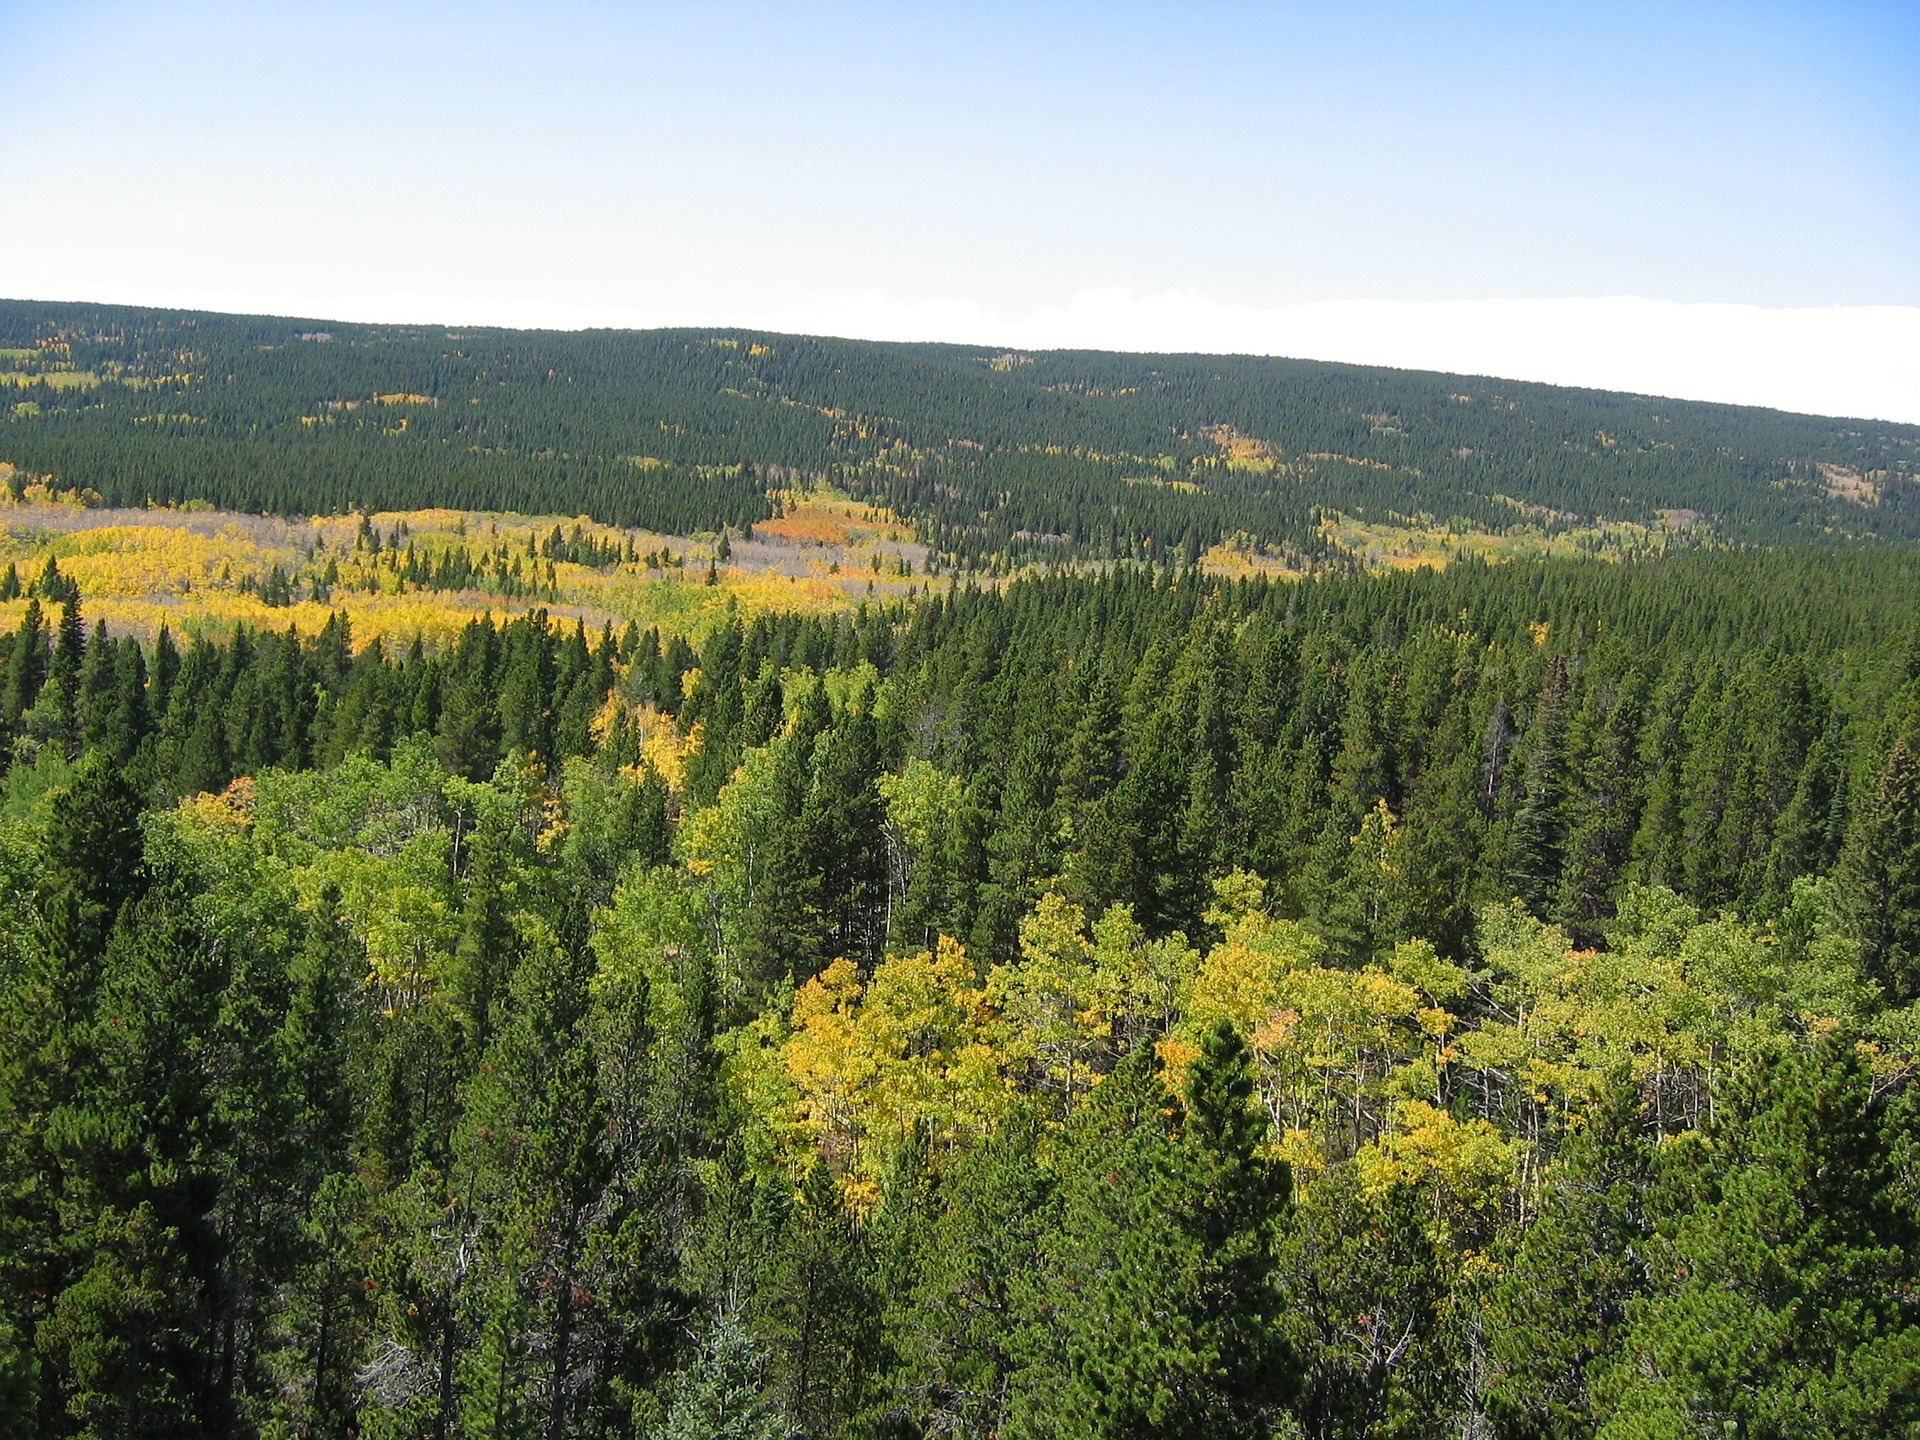 Air view of Evergreen Colorado showing confers